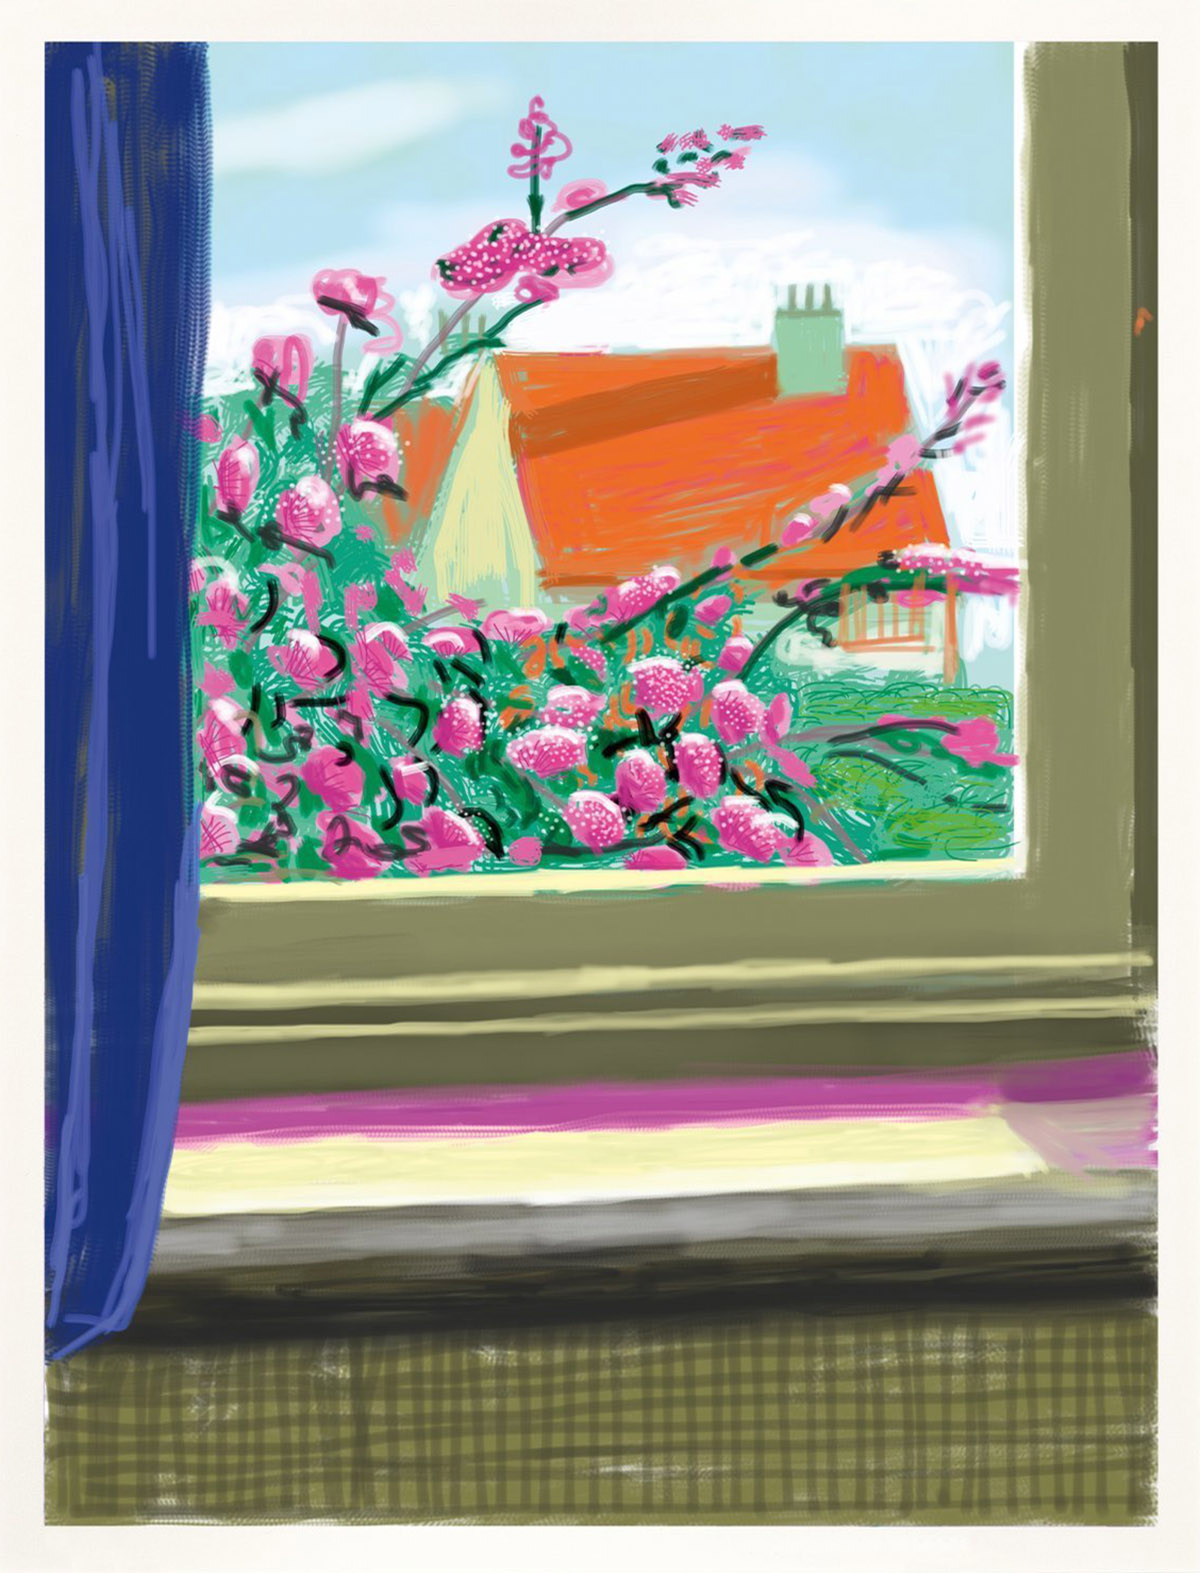 DAVID HOCKNEY Spring (No. 778, 17th April, 2011-2019).